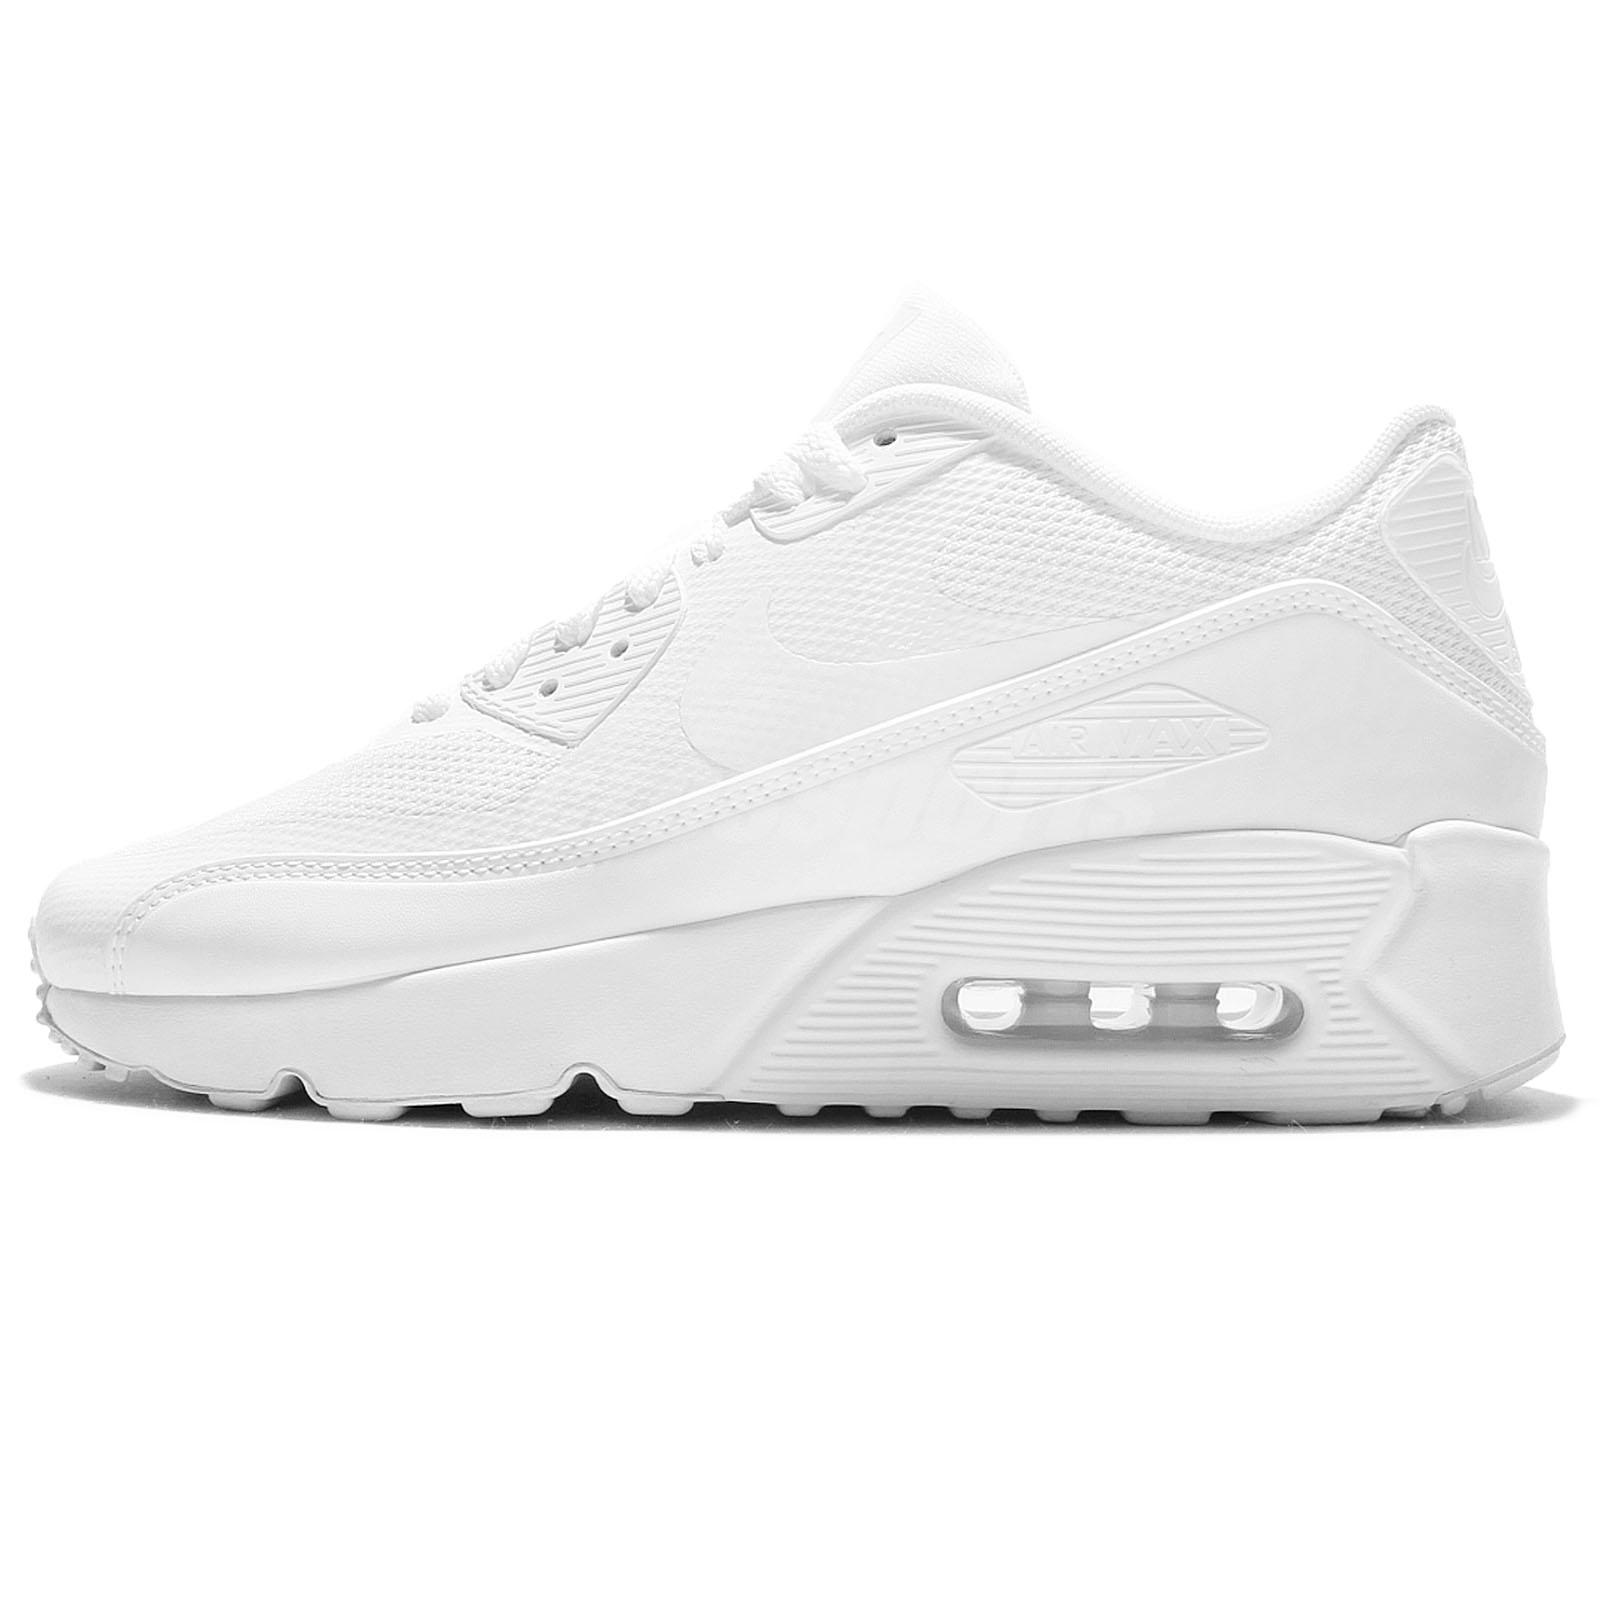 buy online d1955 0b796 Nike Air Max 90 Ultra 2.0 GS Triple White Kid Women Running Shoes 869950-100